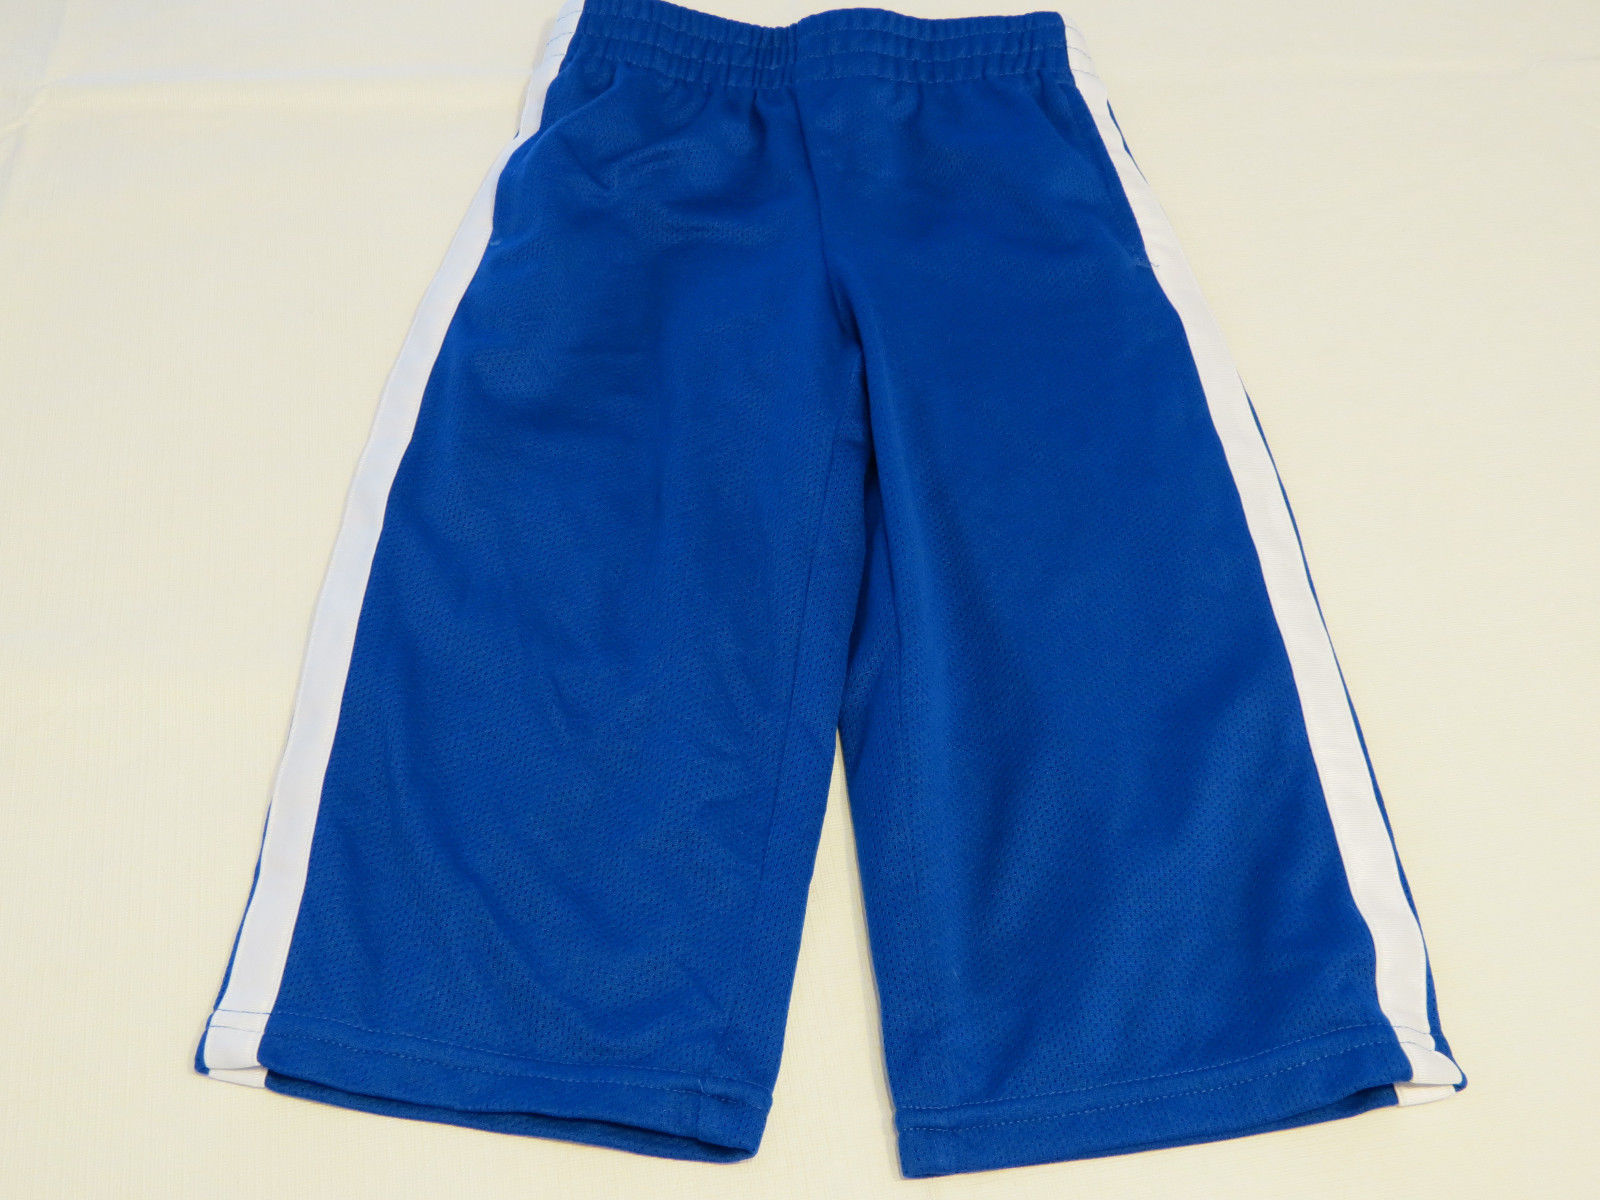 Primary image for The Children's Place active pants 24 M baby boys NWT blue white Athletics Dept